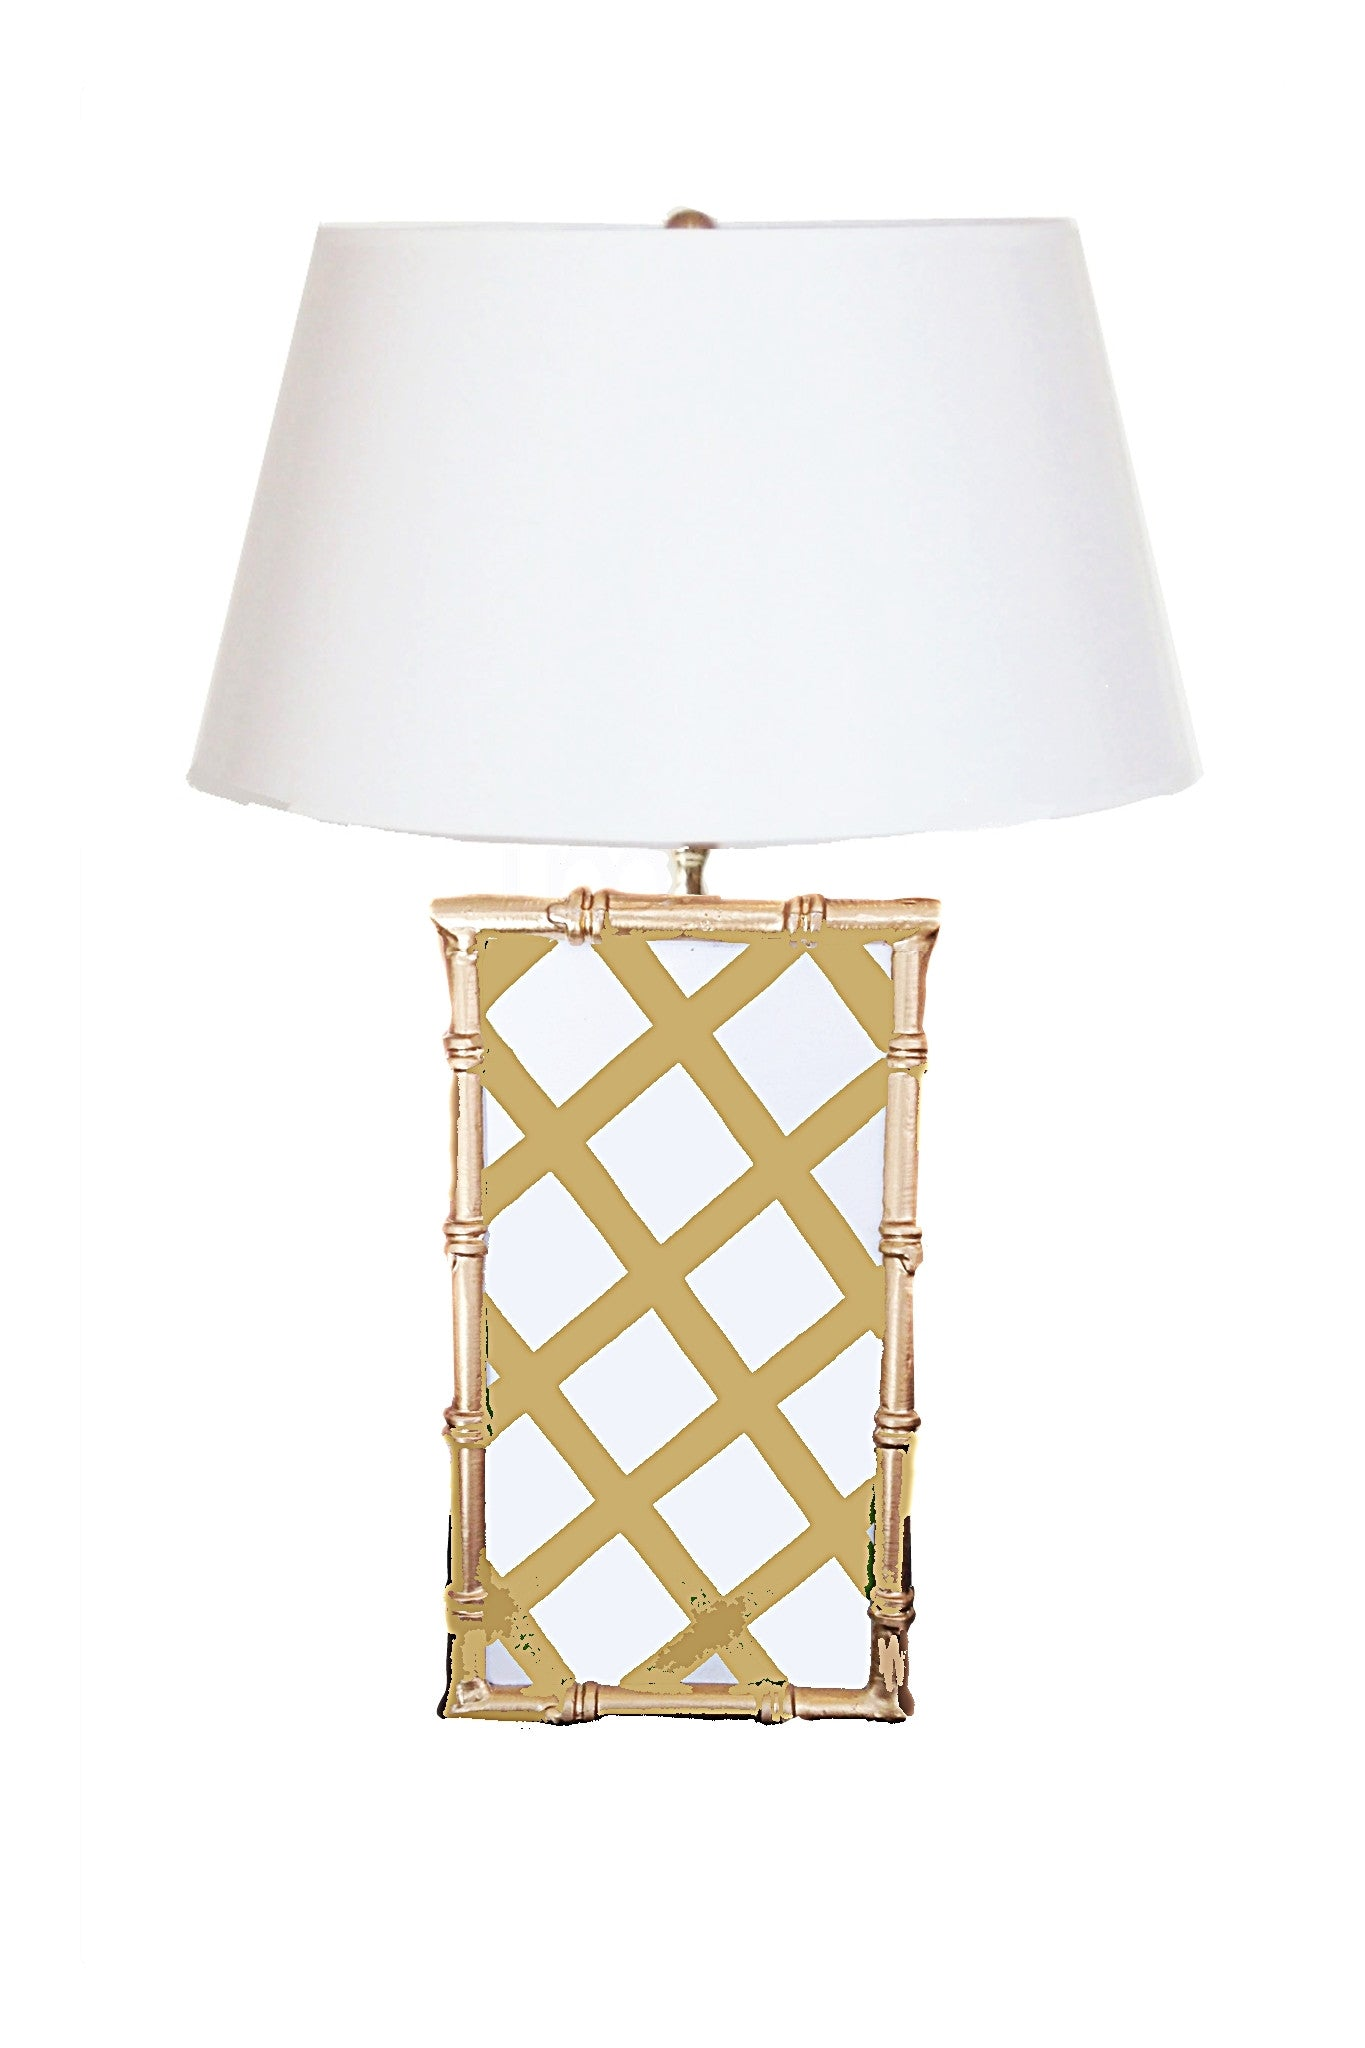 Copy of Bamboo Lamp  in Taupe Lattice